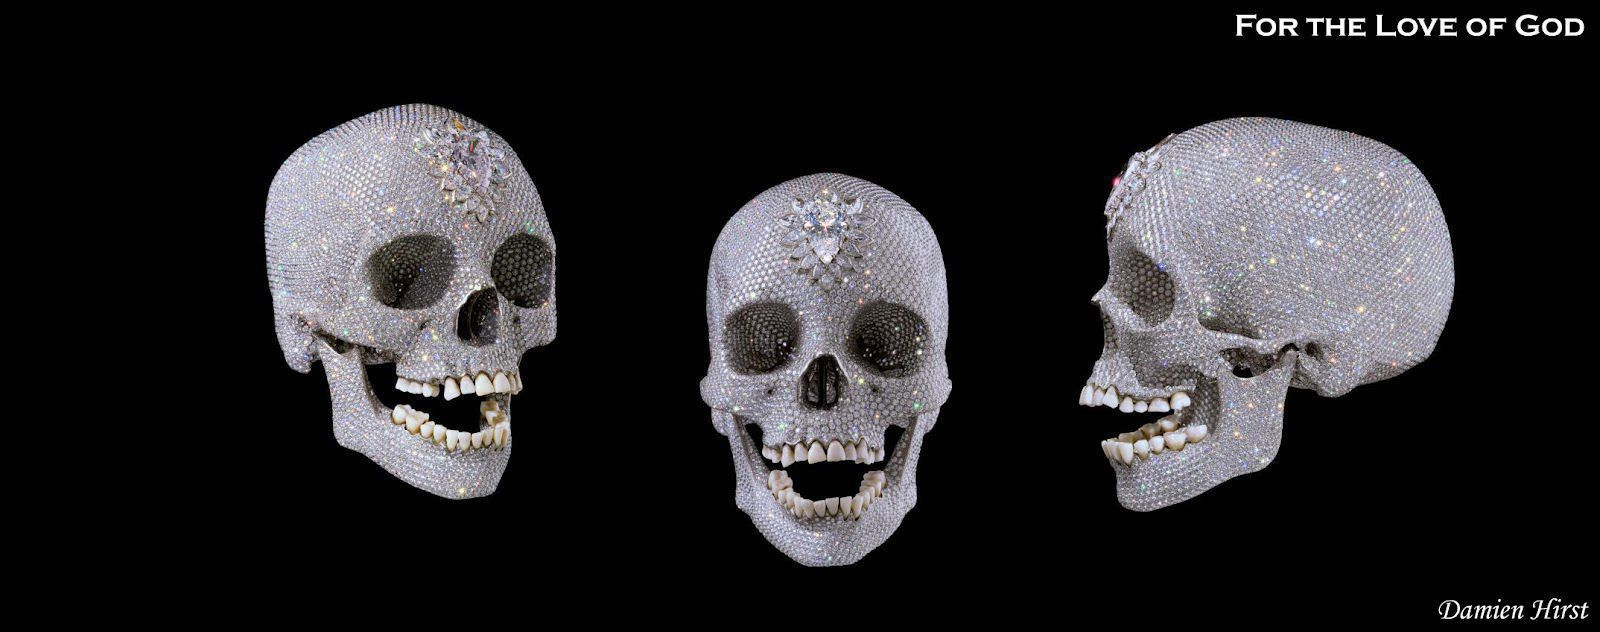 Hirst - For the Love of God